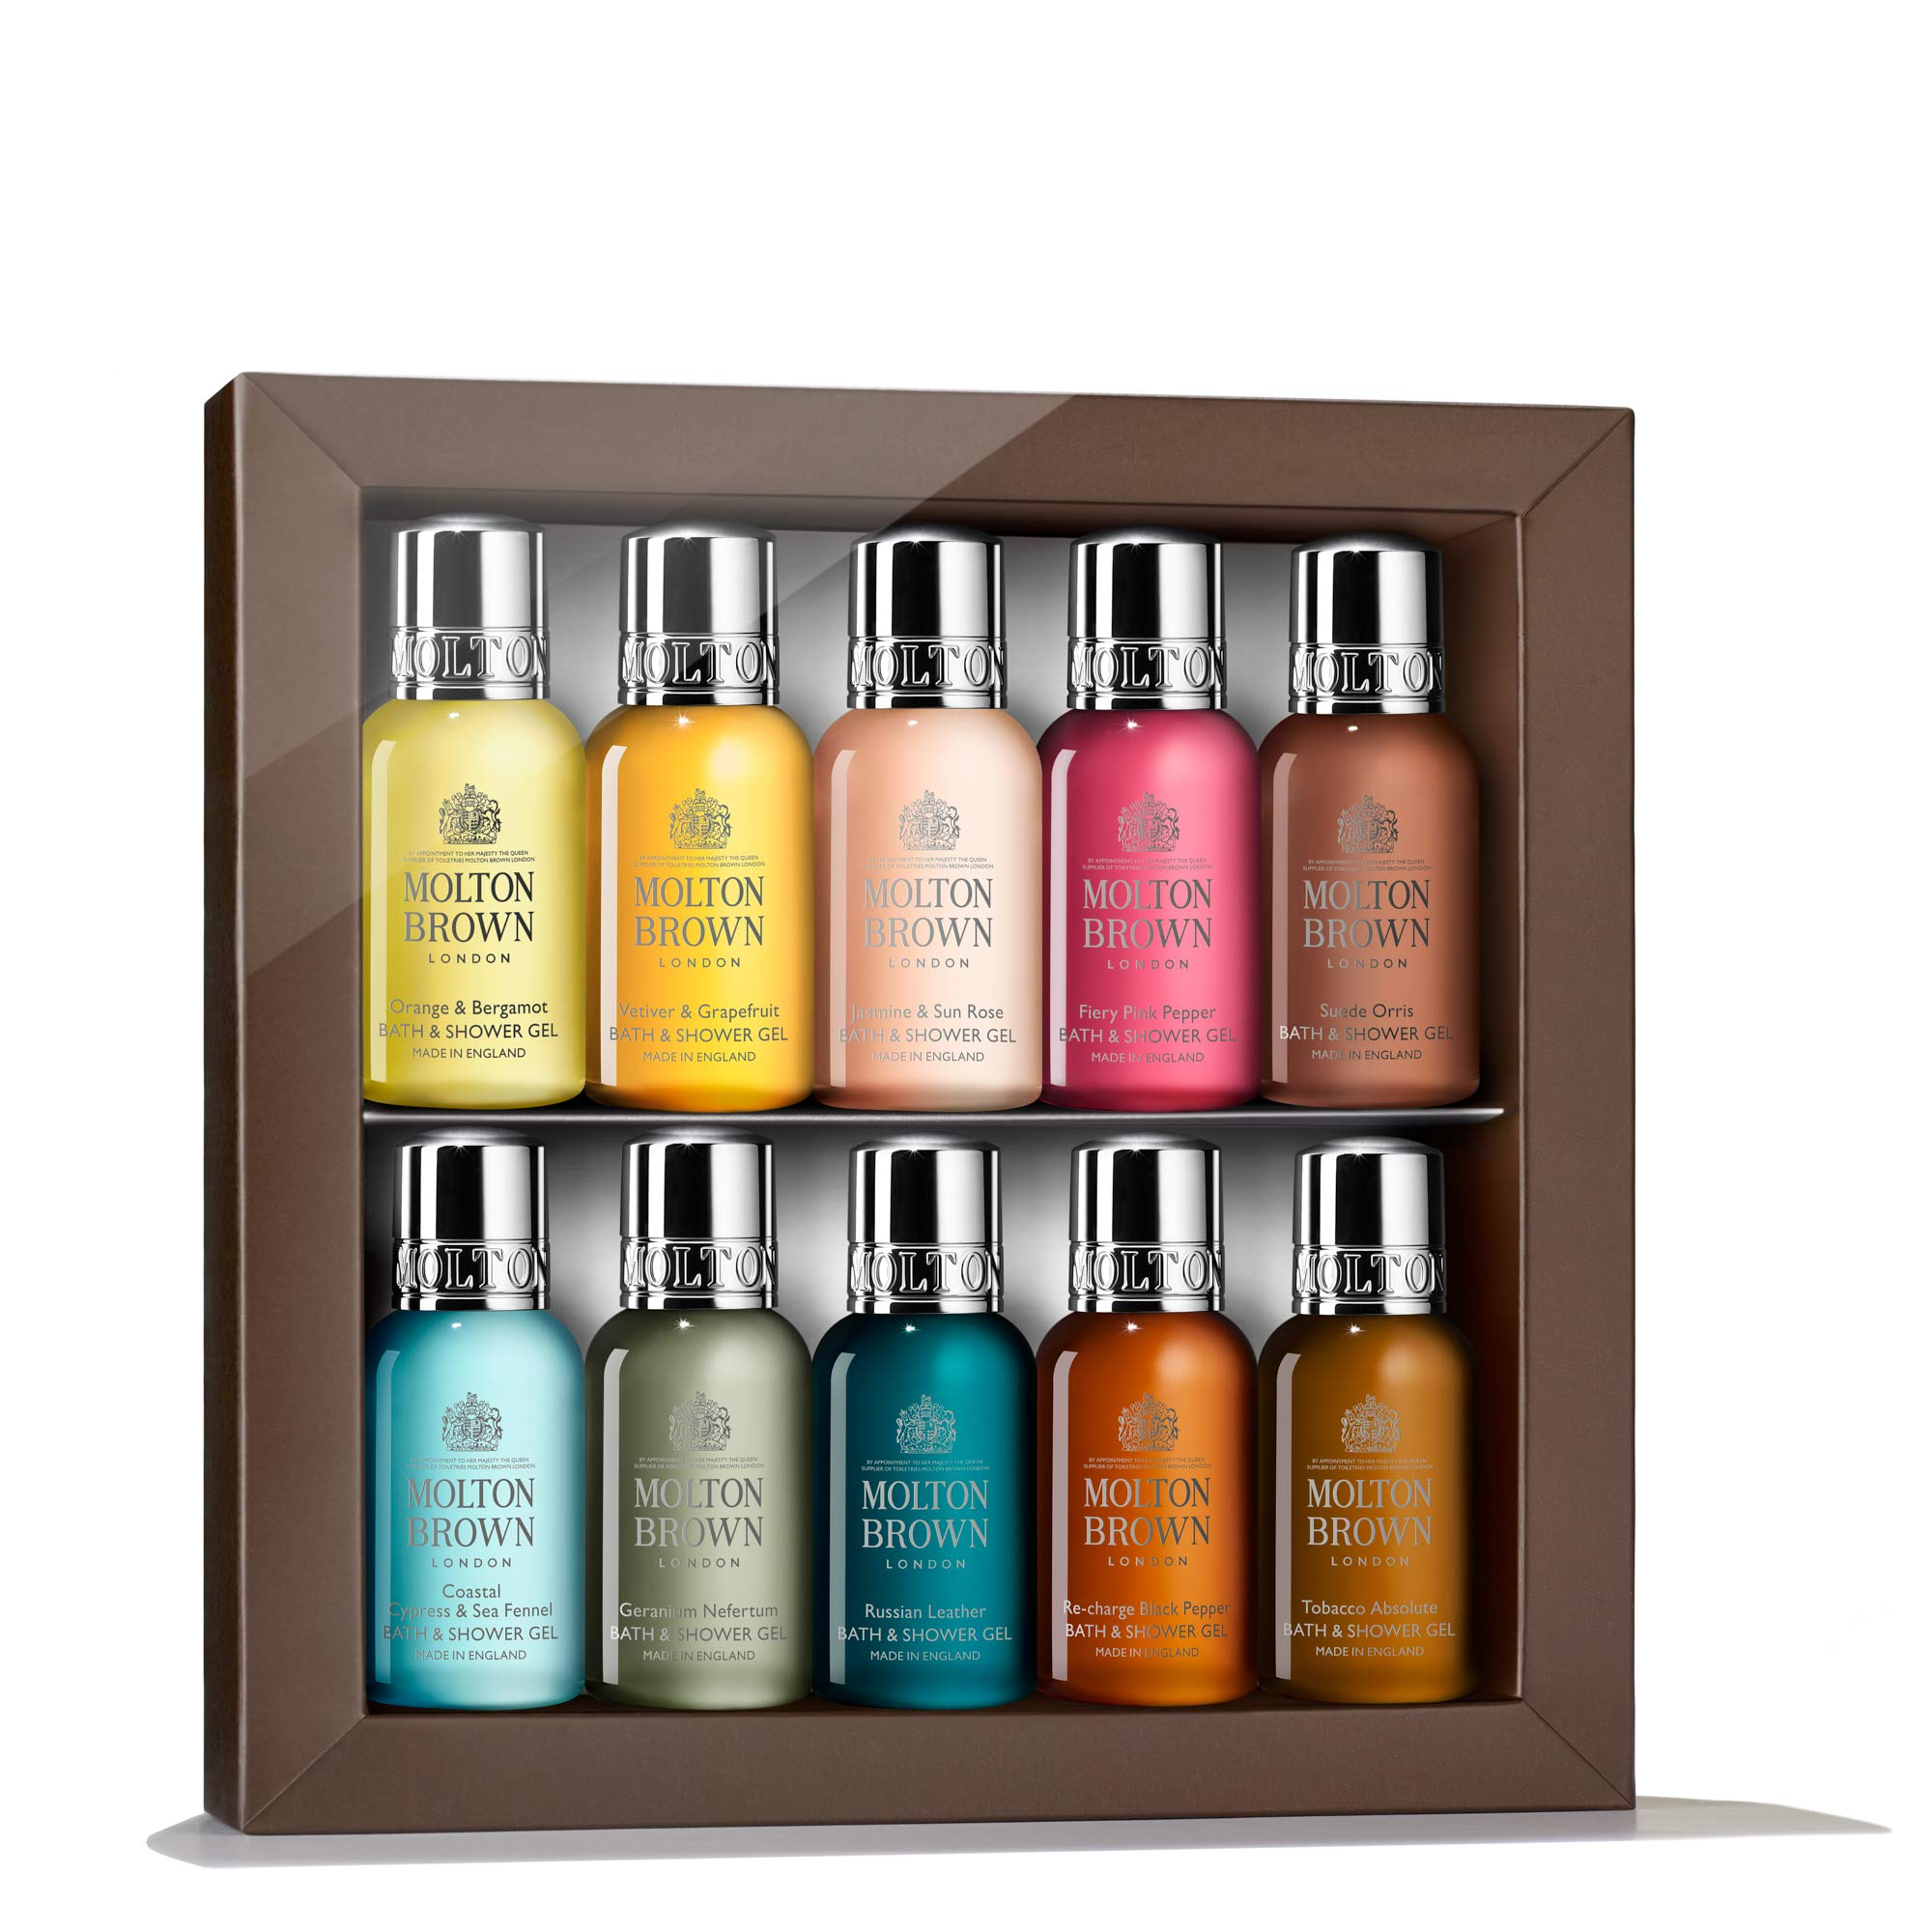 Molton Brown Discovery Bath & Shower Gel Gift Set (10 x 30ml)